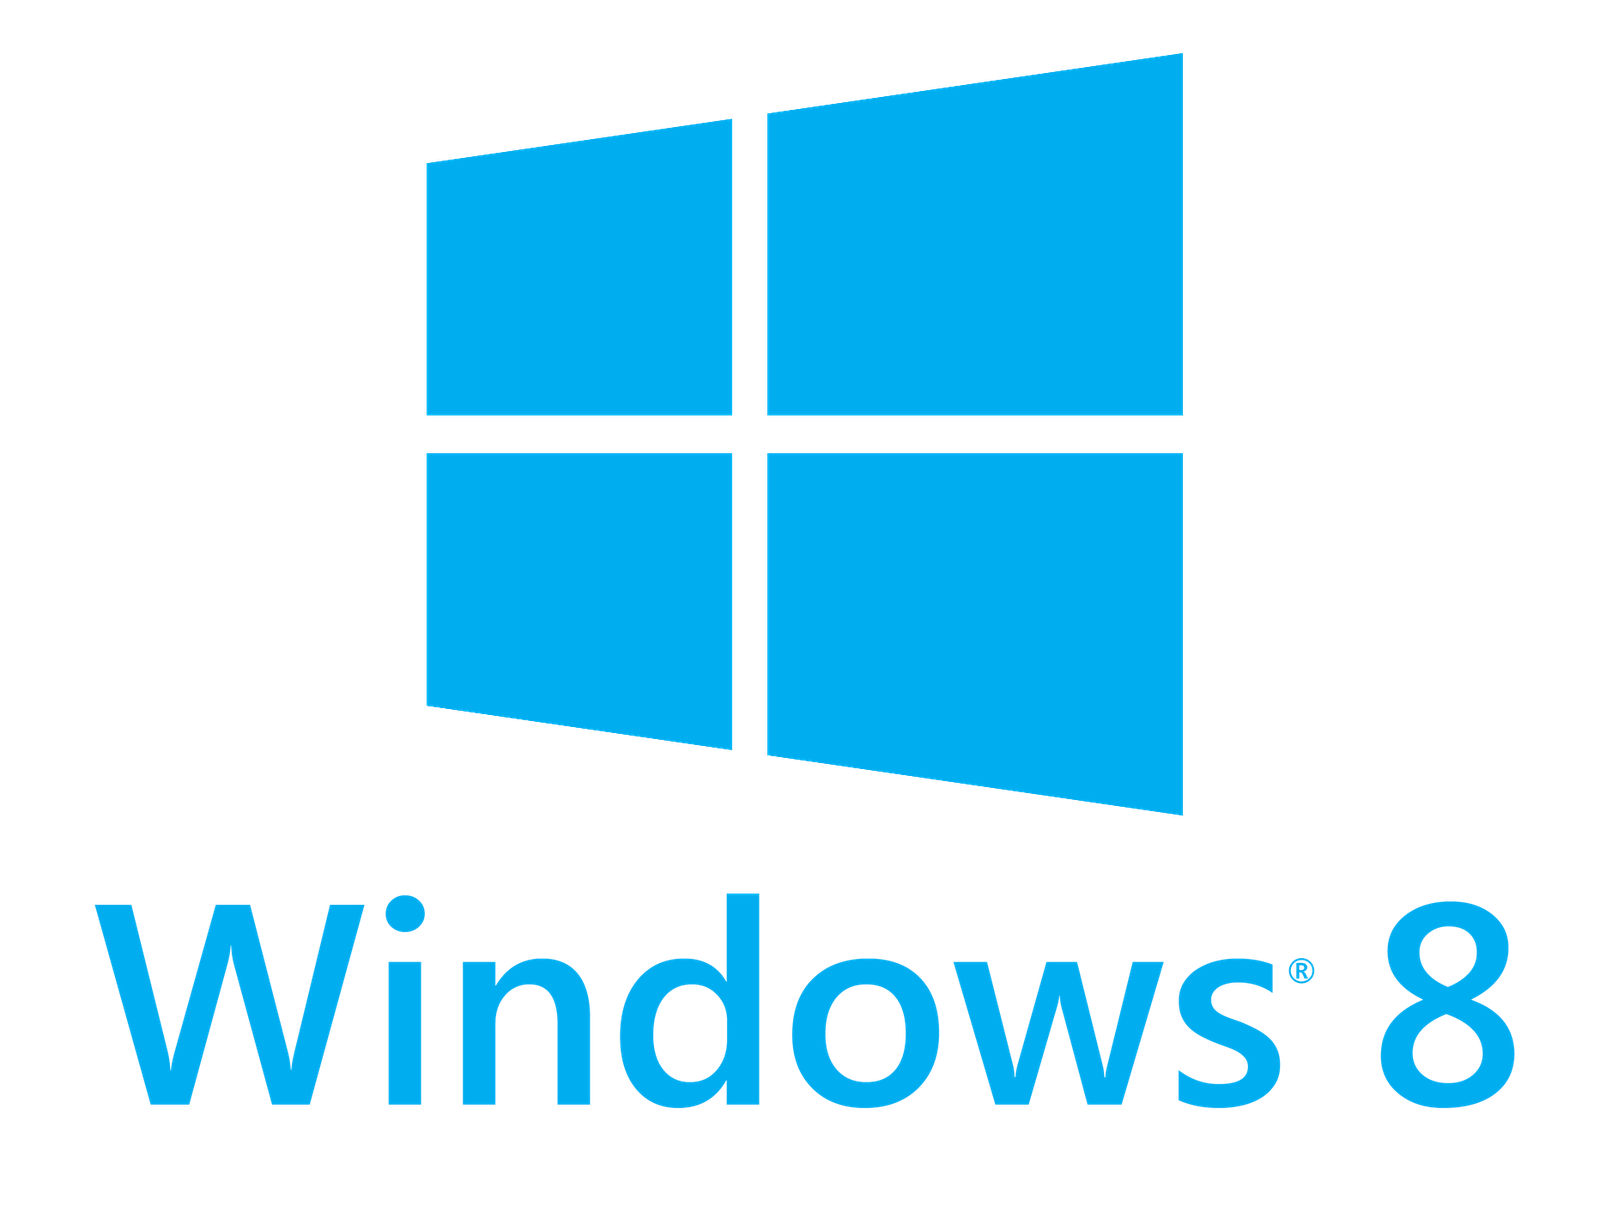 Windows 8 reaches 200 million licenses sold, Windows 8, 200 million licenses sold